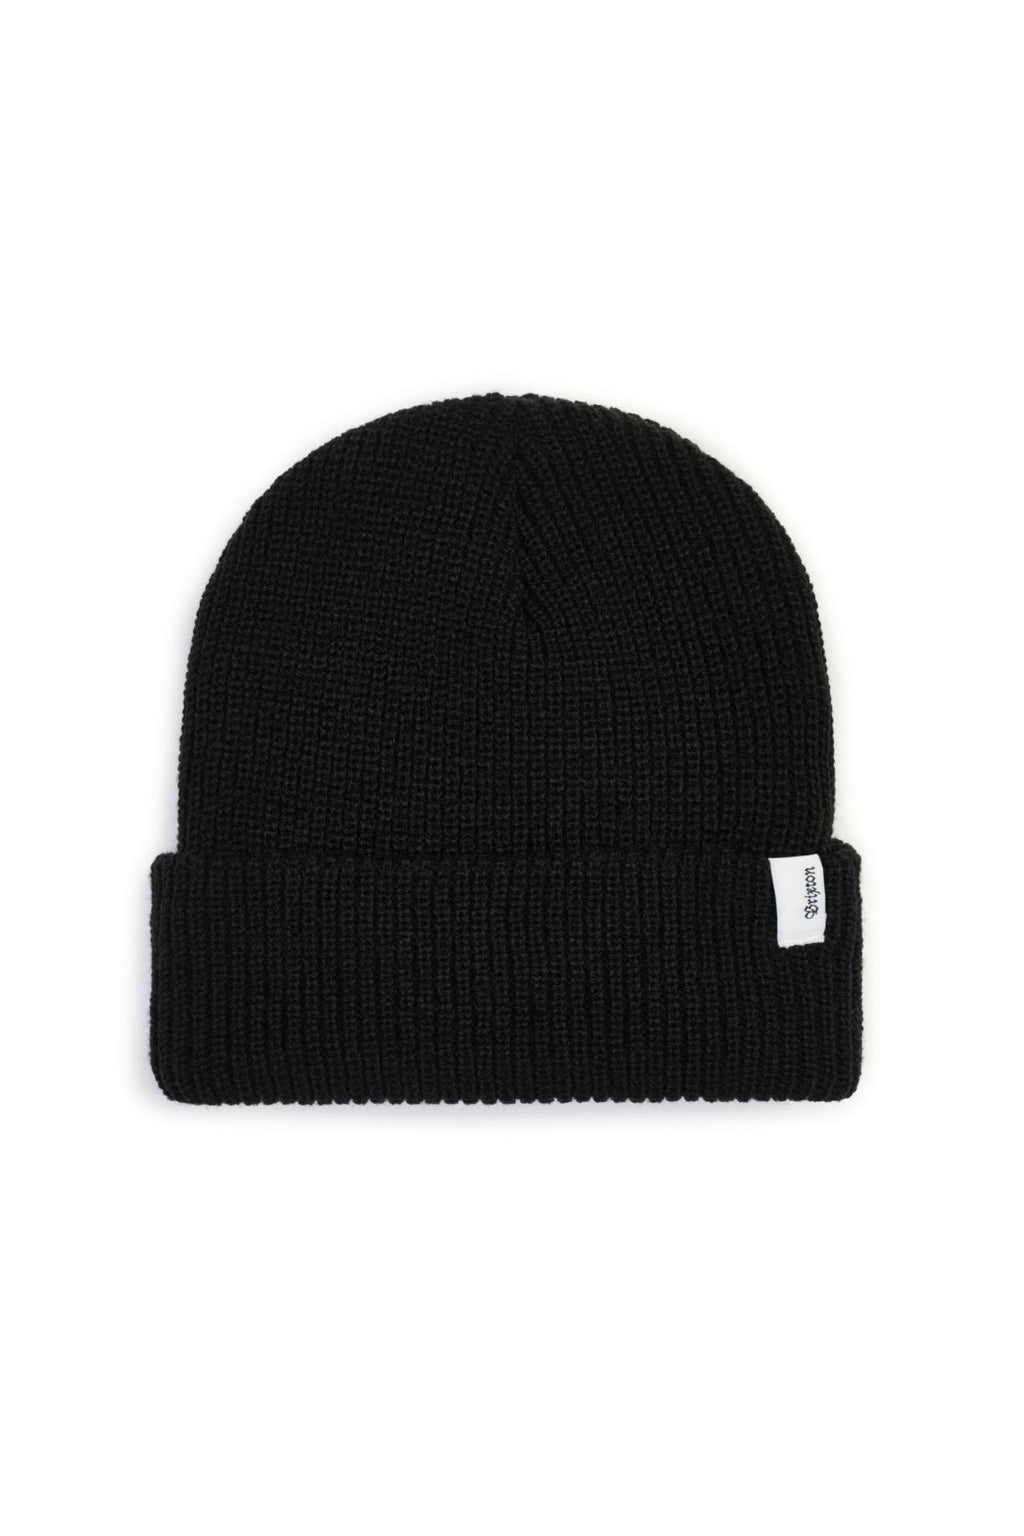 Brixton Aspen Beanie in Black